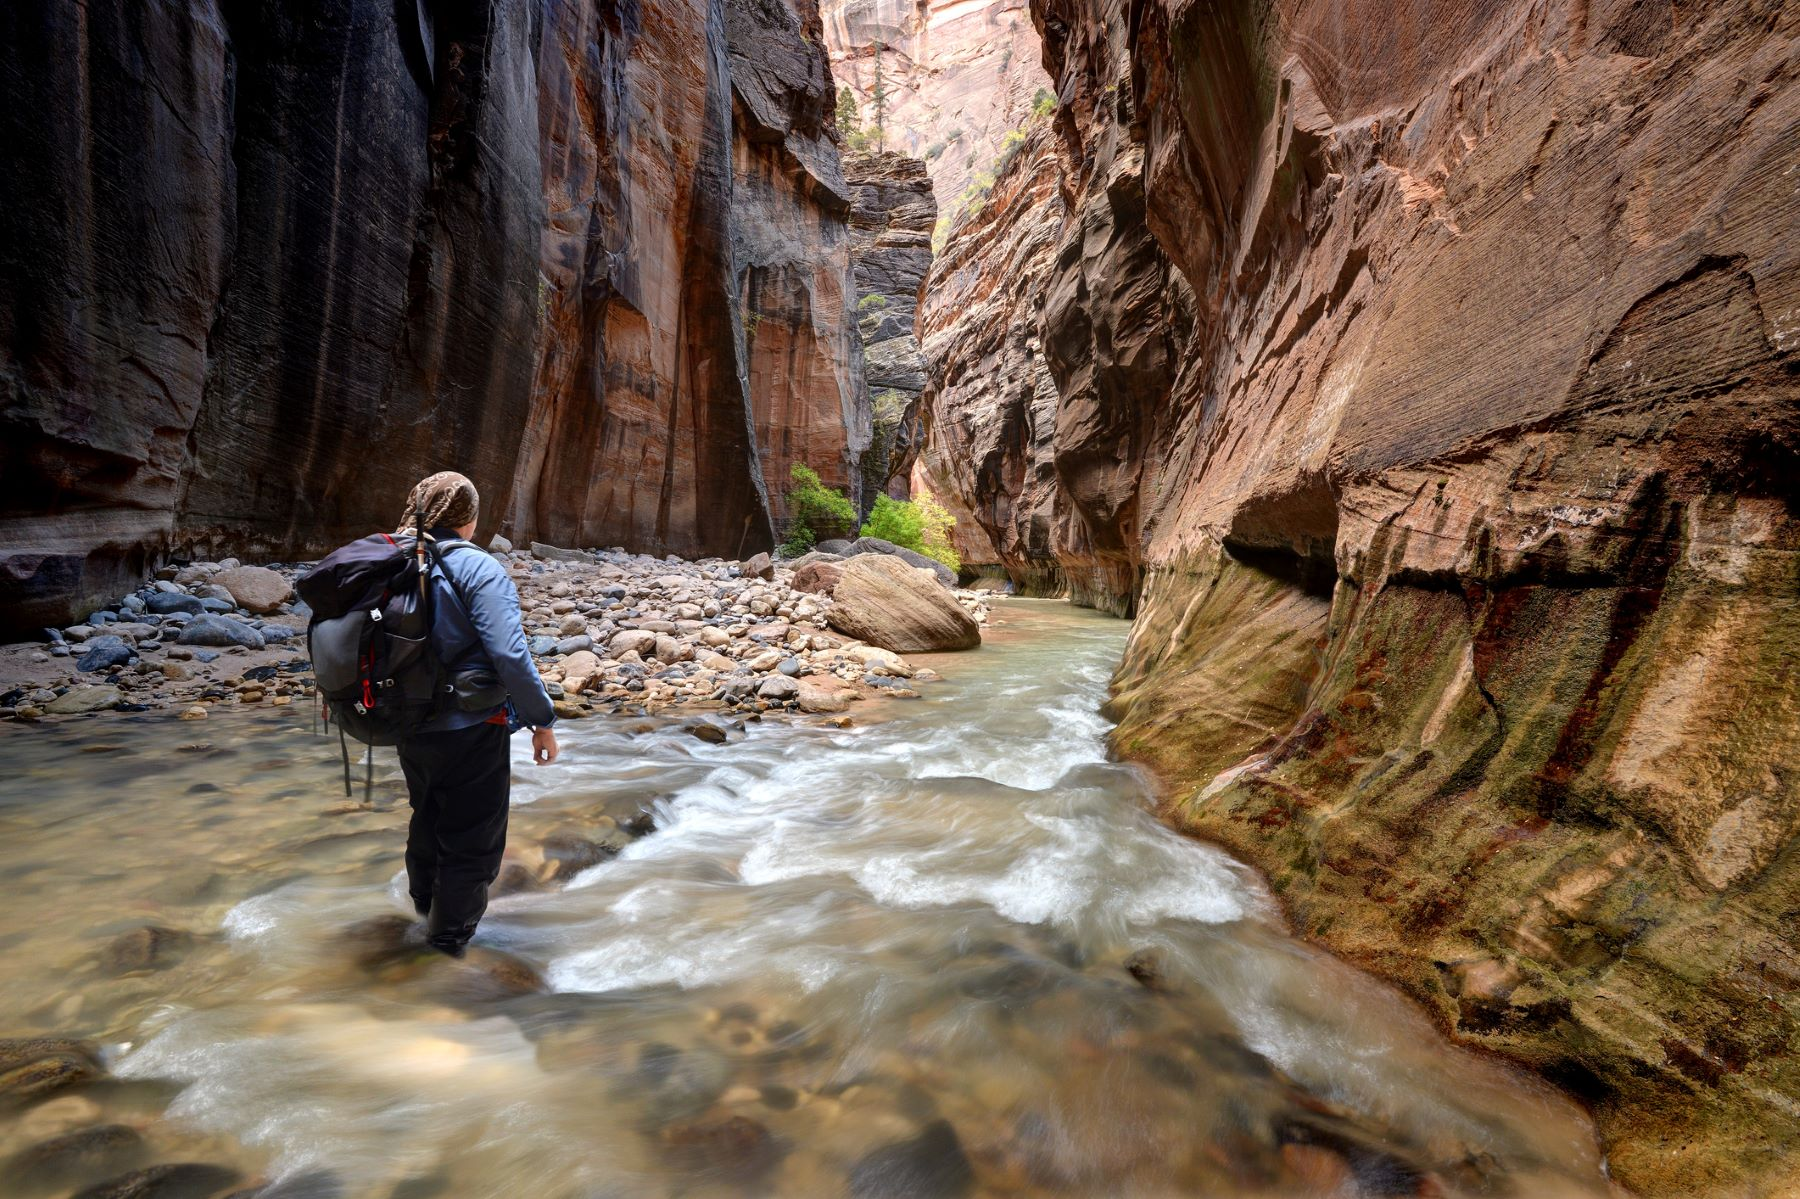 a person walking through The Narrows